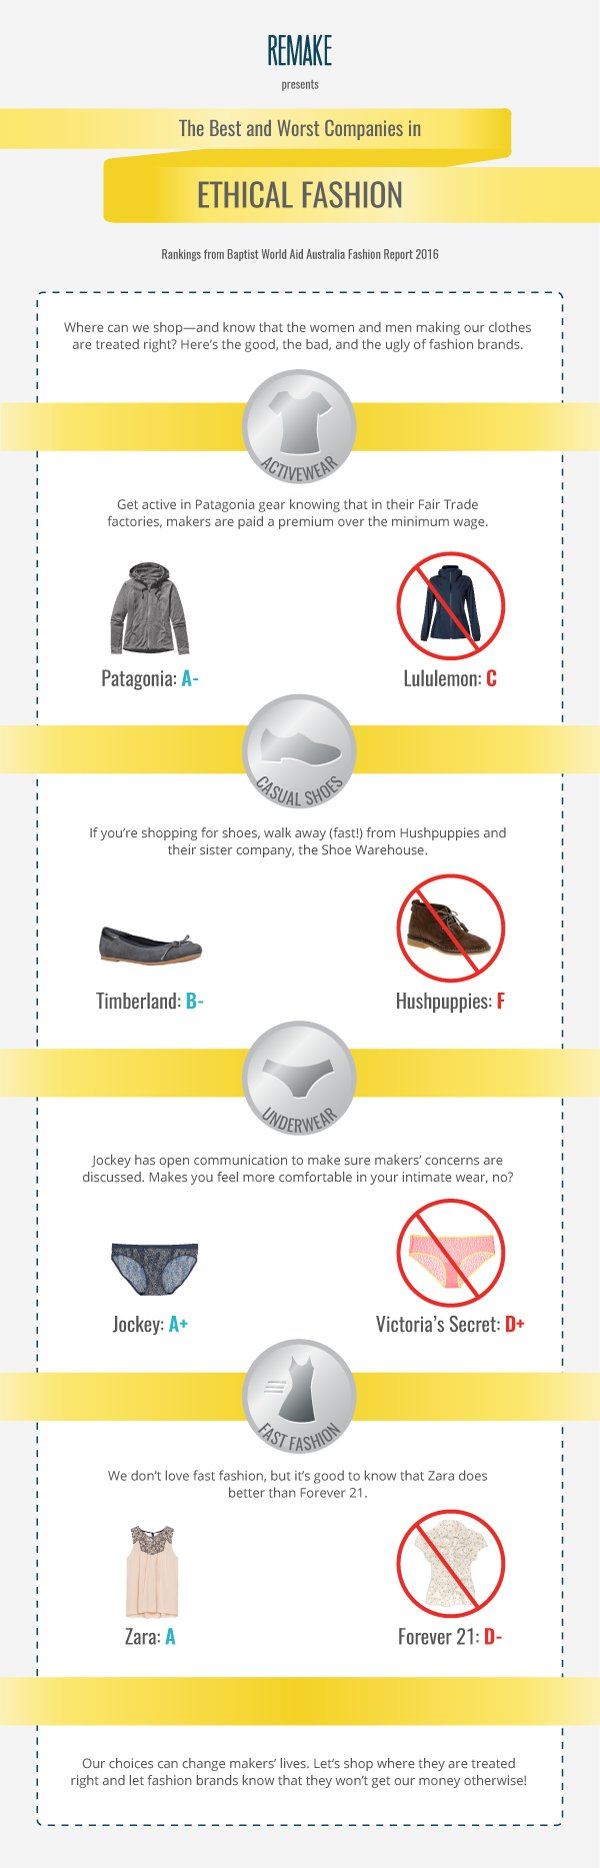 Best and Worst of Ethical Fashion - Infographic